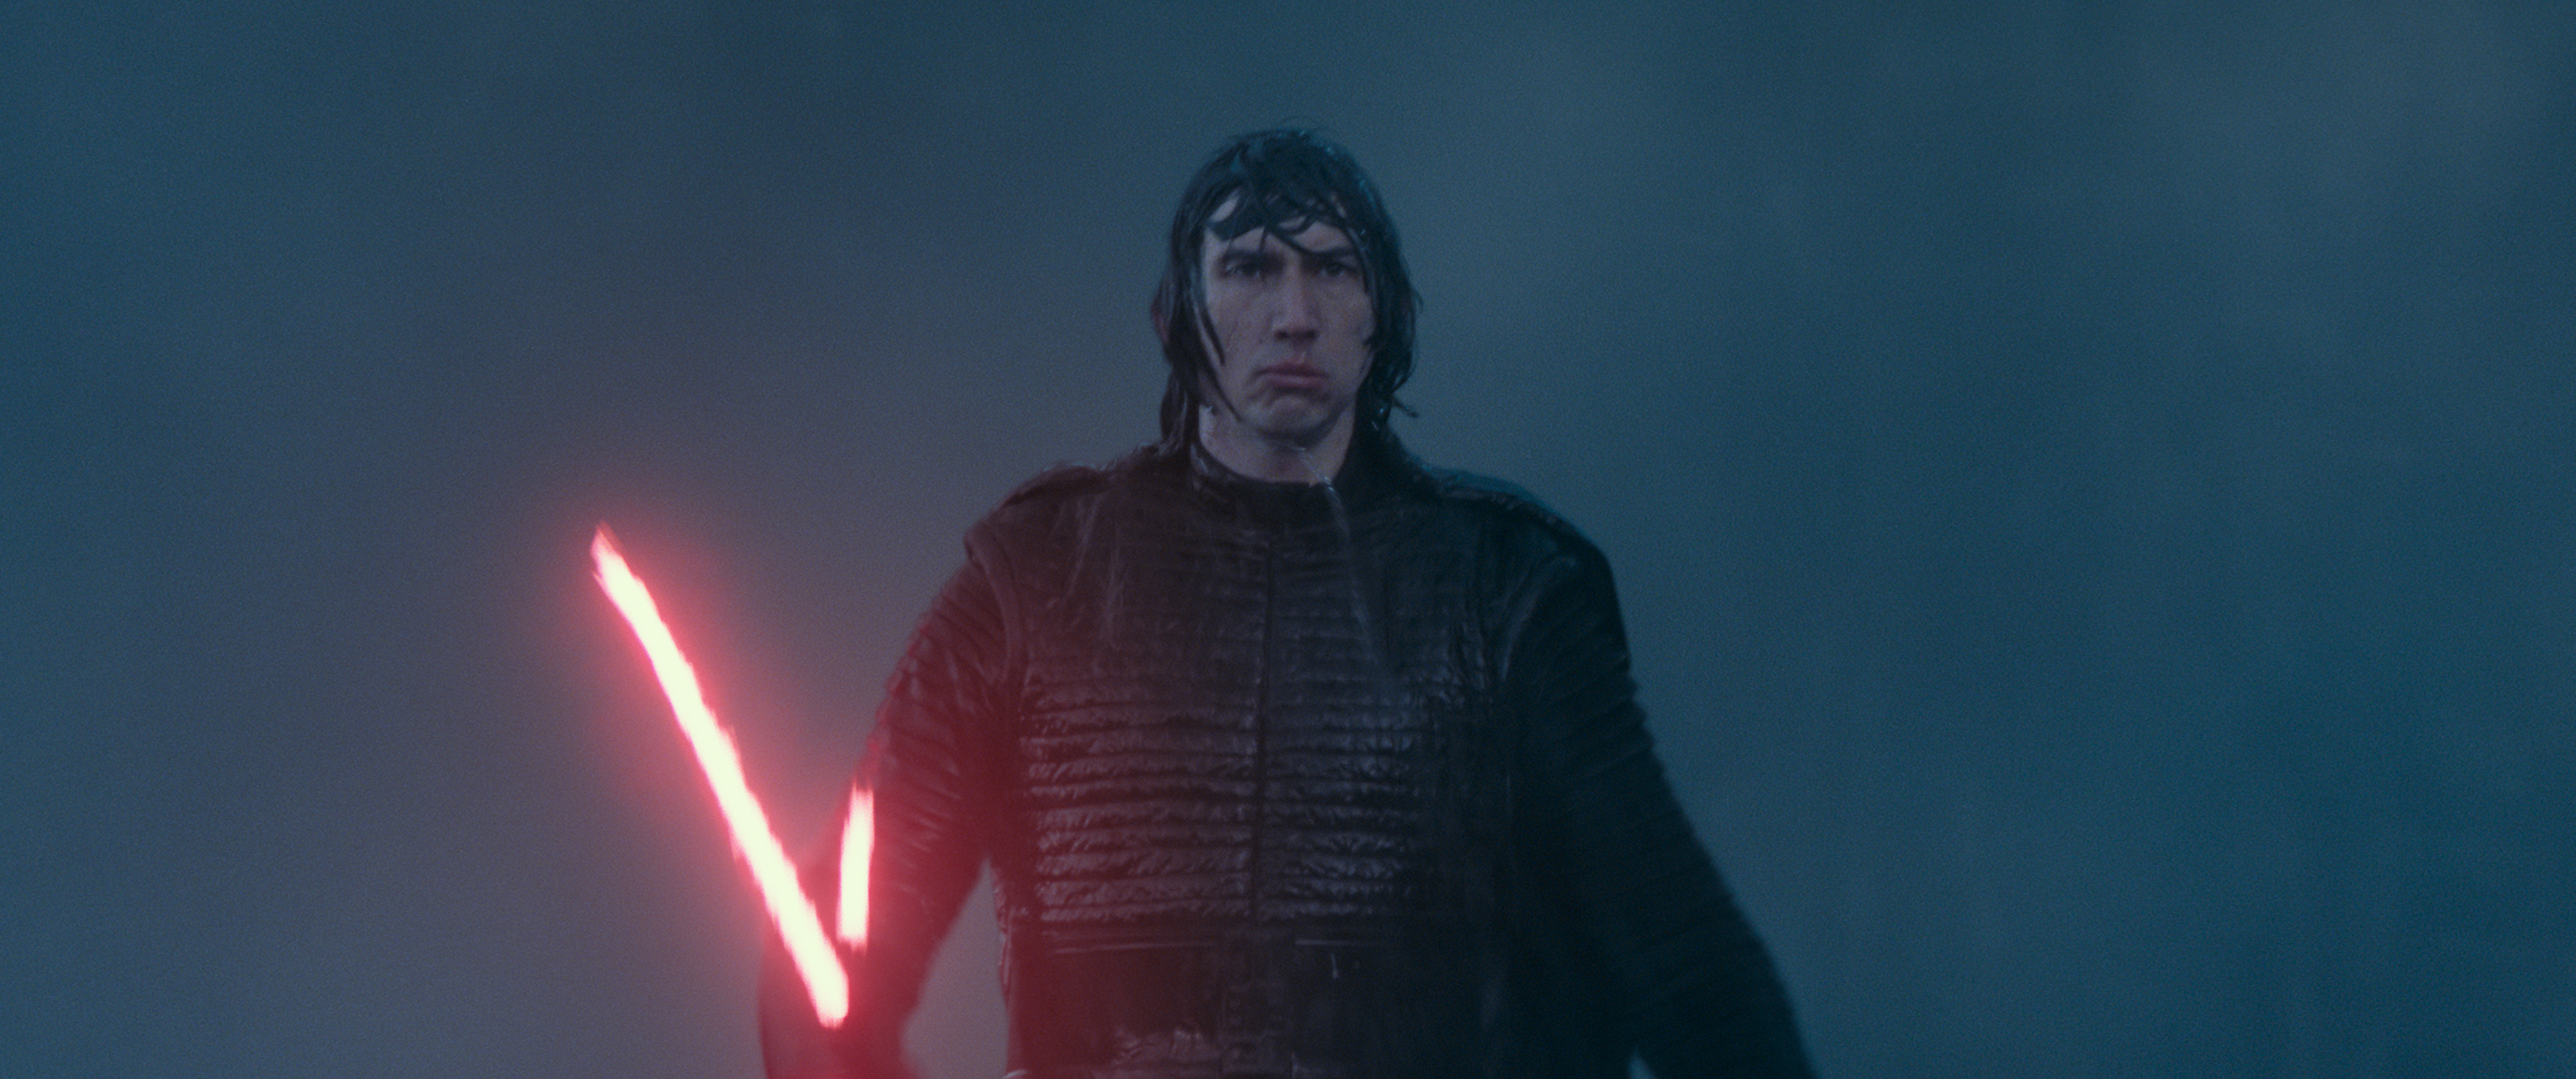 Kylo Ren prepares for yet another fight with Rey.